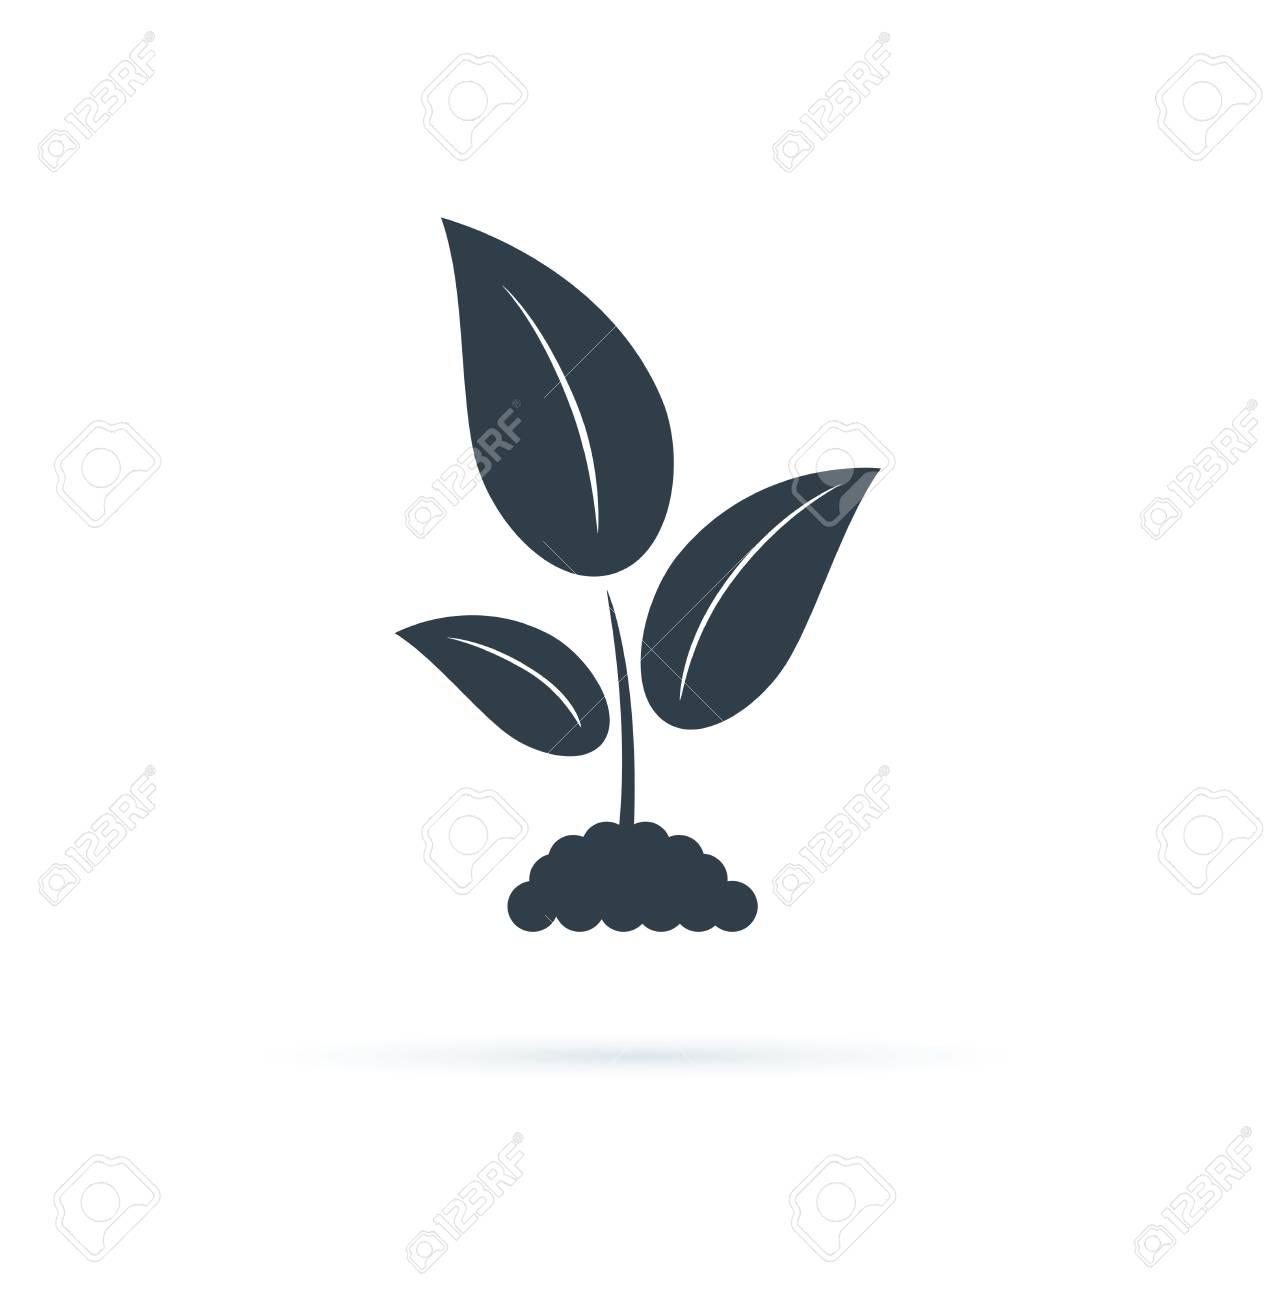 Plant Icon Vector Icon Illustration Agriculture Symbol Biology Royalty Free Cliparts Vectors And Stock Illustration Image 122706597 Here you can explore hq plant icon transparent illustrations, icons and clipart with filter setting like polish your personal project or design with these plant icon transparent png images, make it even. plant icon vector icon illustration agriculture symbol biology